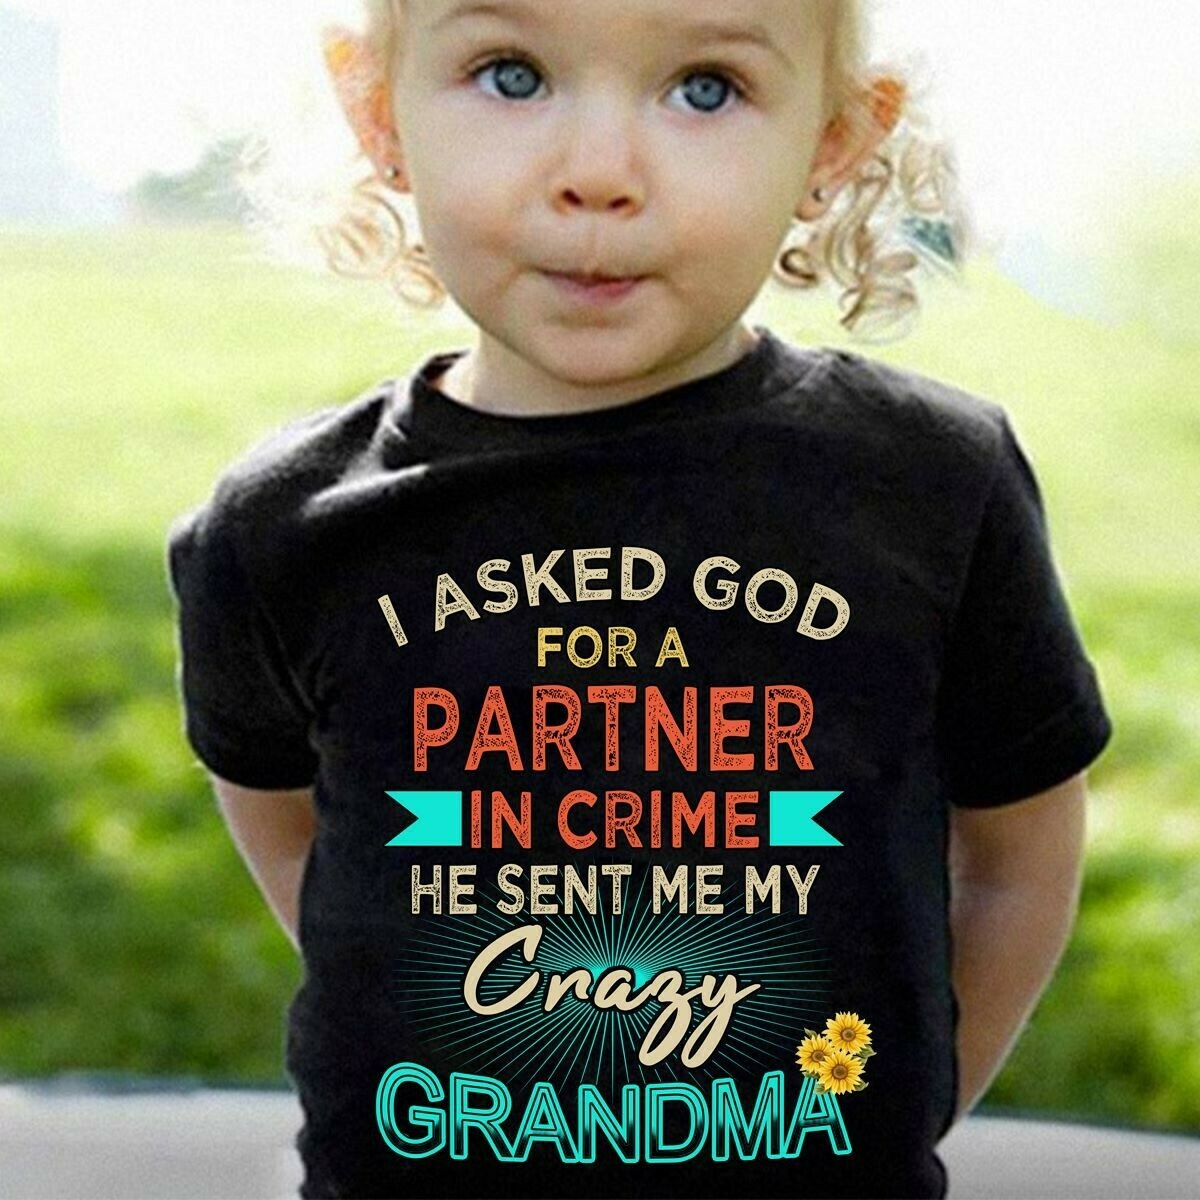 I Asked God for a Partner In Crime He Sent Me Crazy Grandma for Women Mother Mama grandma Unisex T-Shirt Hoodie Sweatshirt Sweater Plus Size for Ladies Women Men Kids Youth Gifts Tee Jolly Family